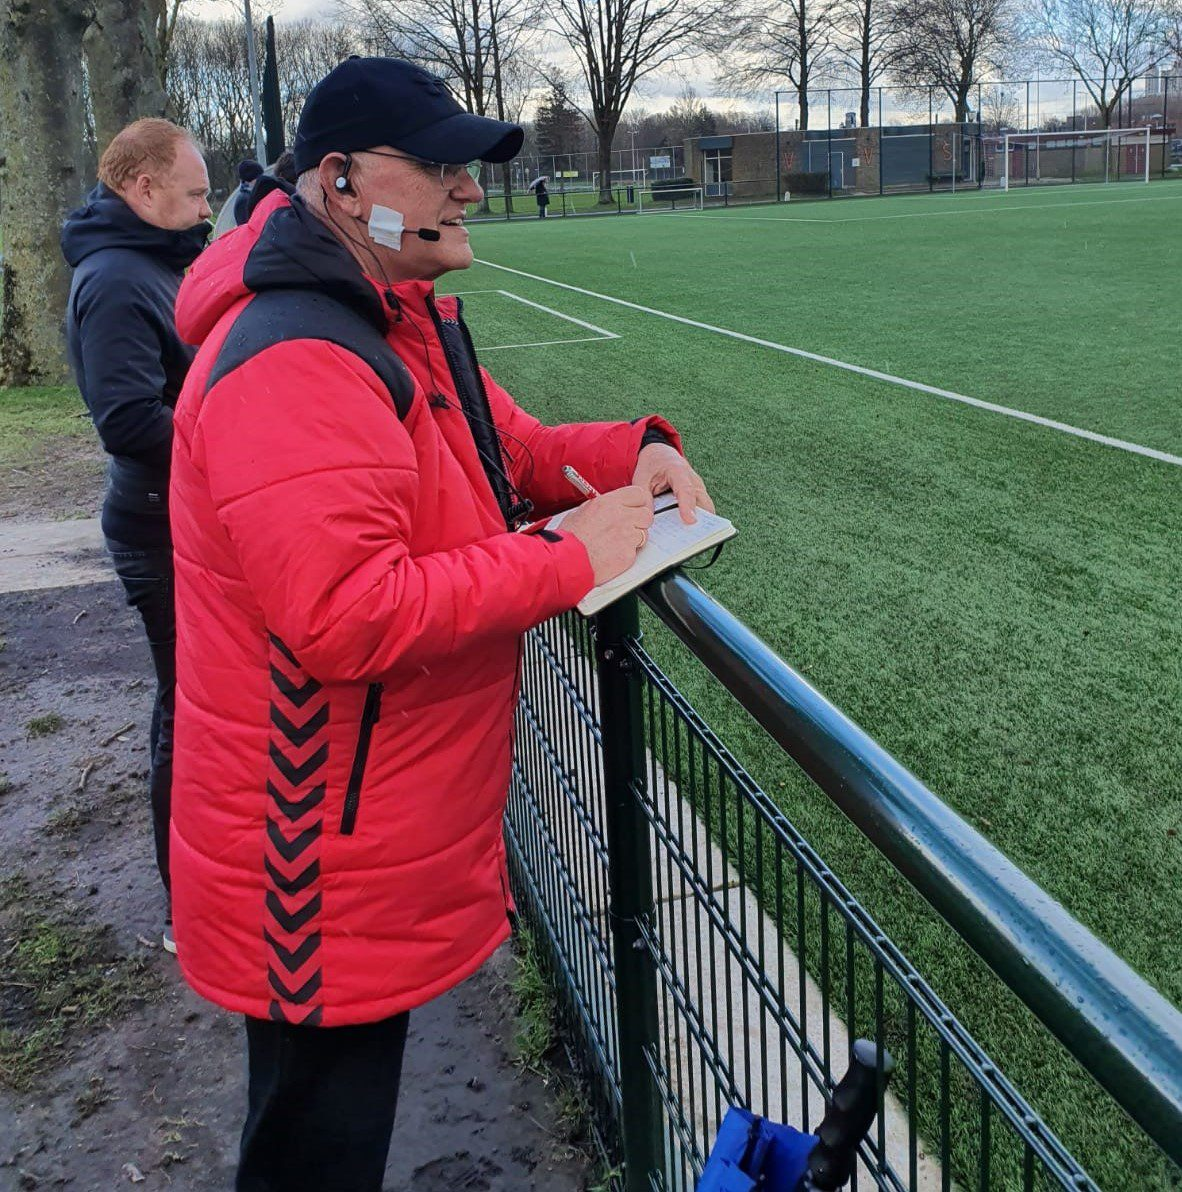 referee headset for coaching referees on the field